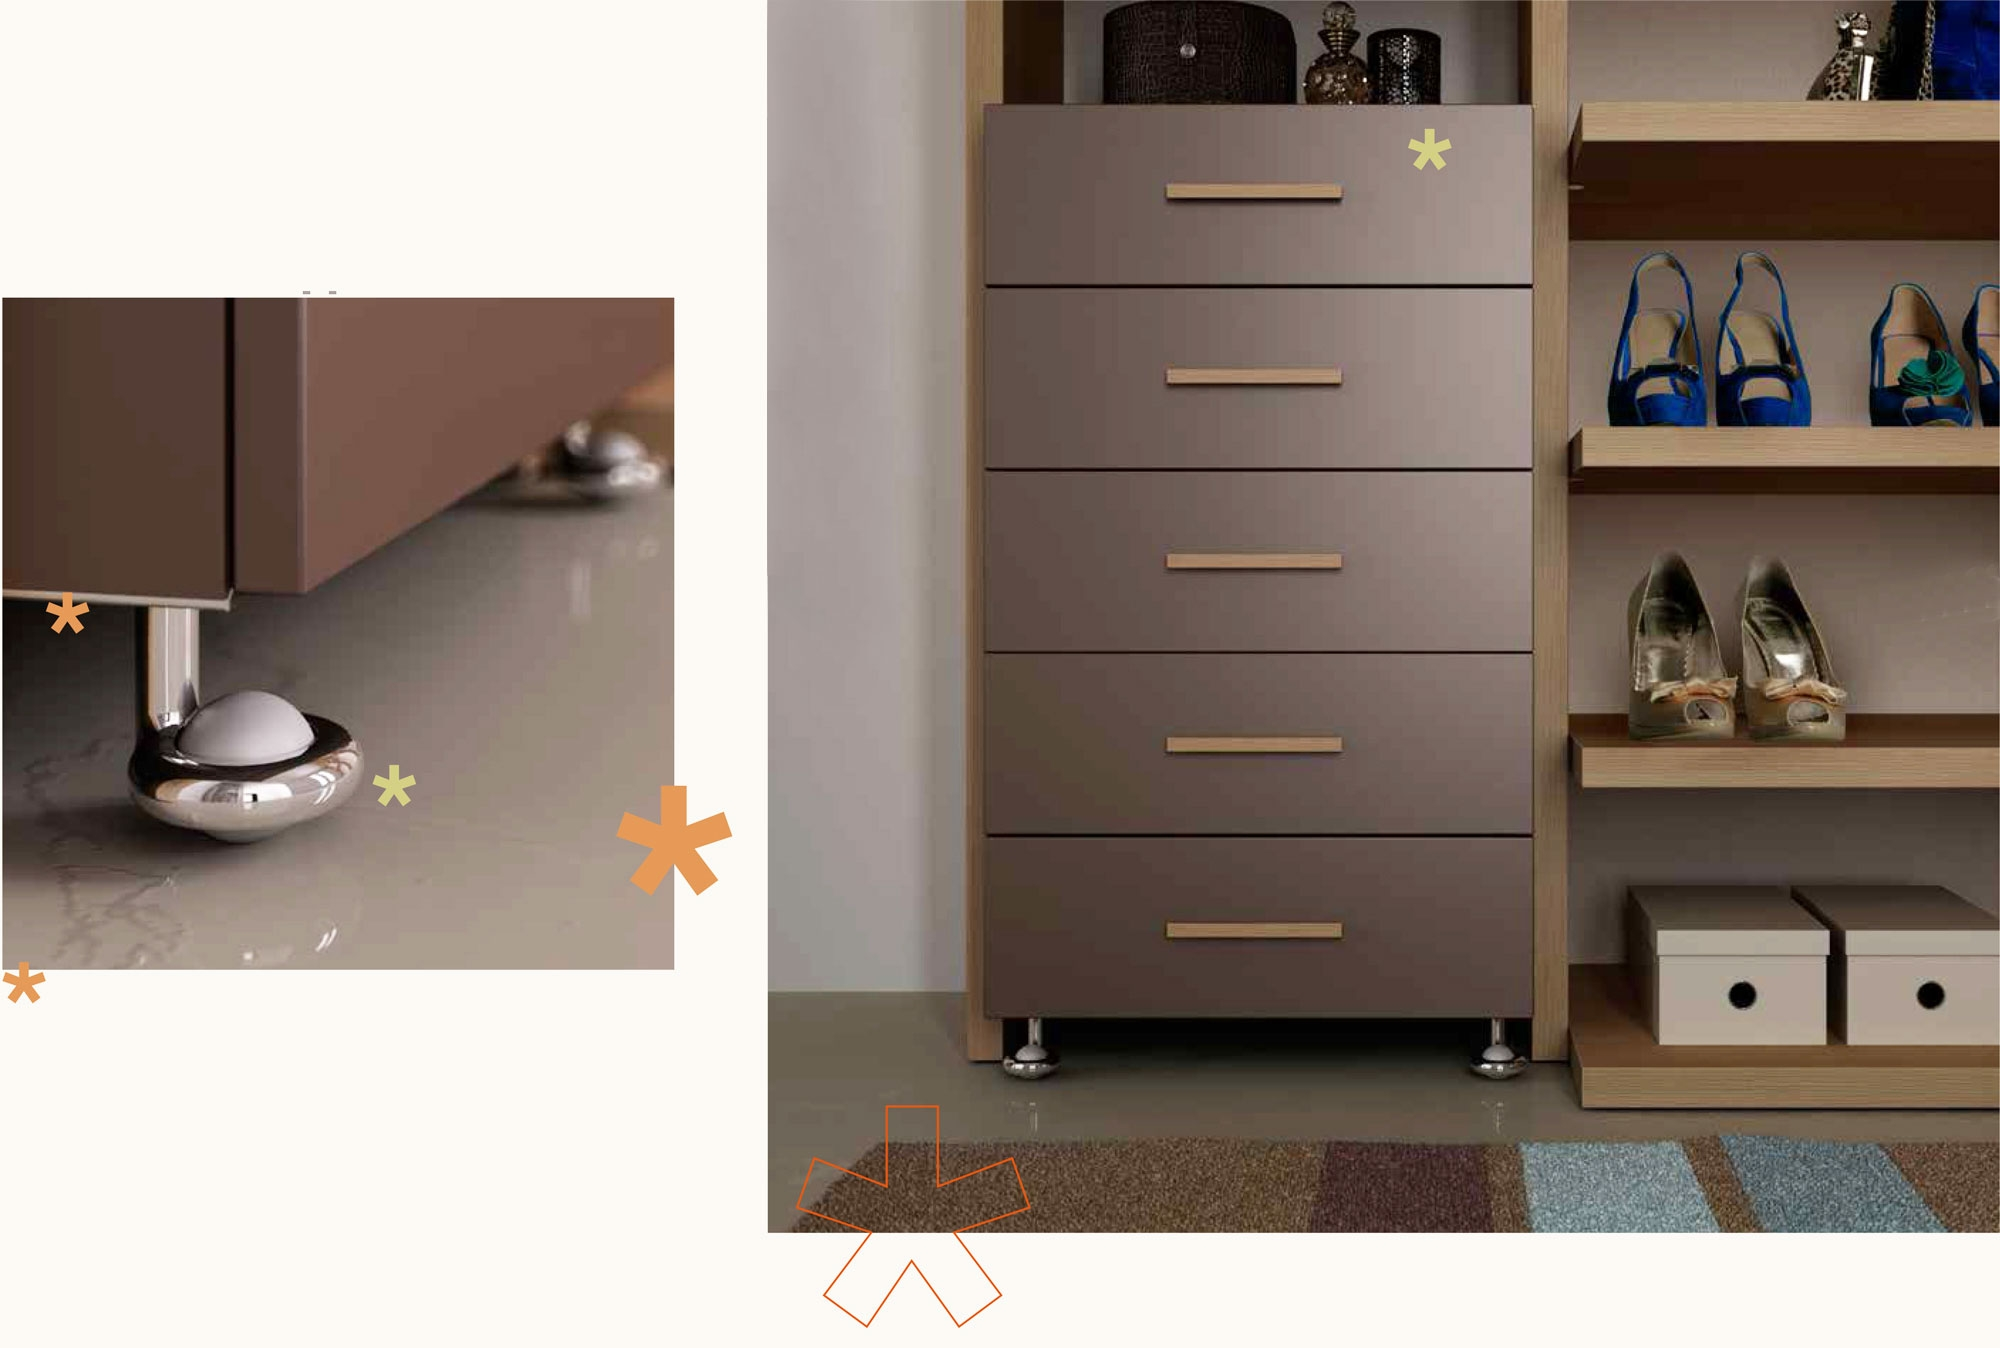 dressing sur mesure en l olme chocolat moretti compact. Black Bedroom Furniture Sets. Home Design Ideas